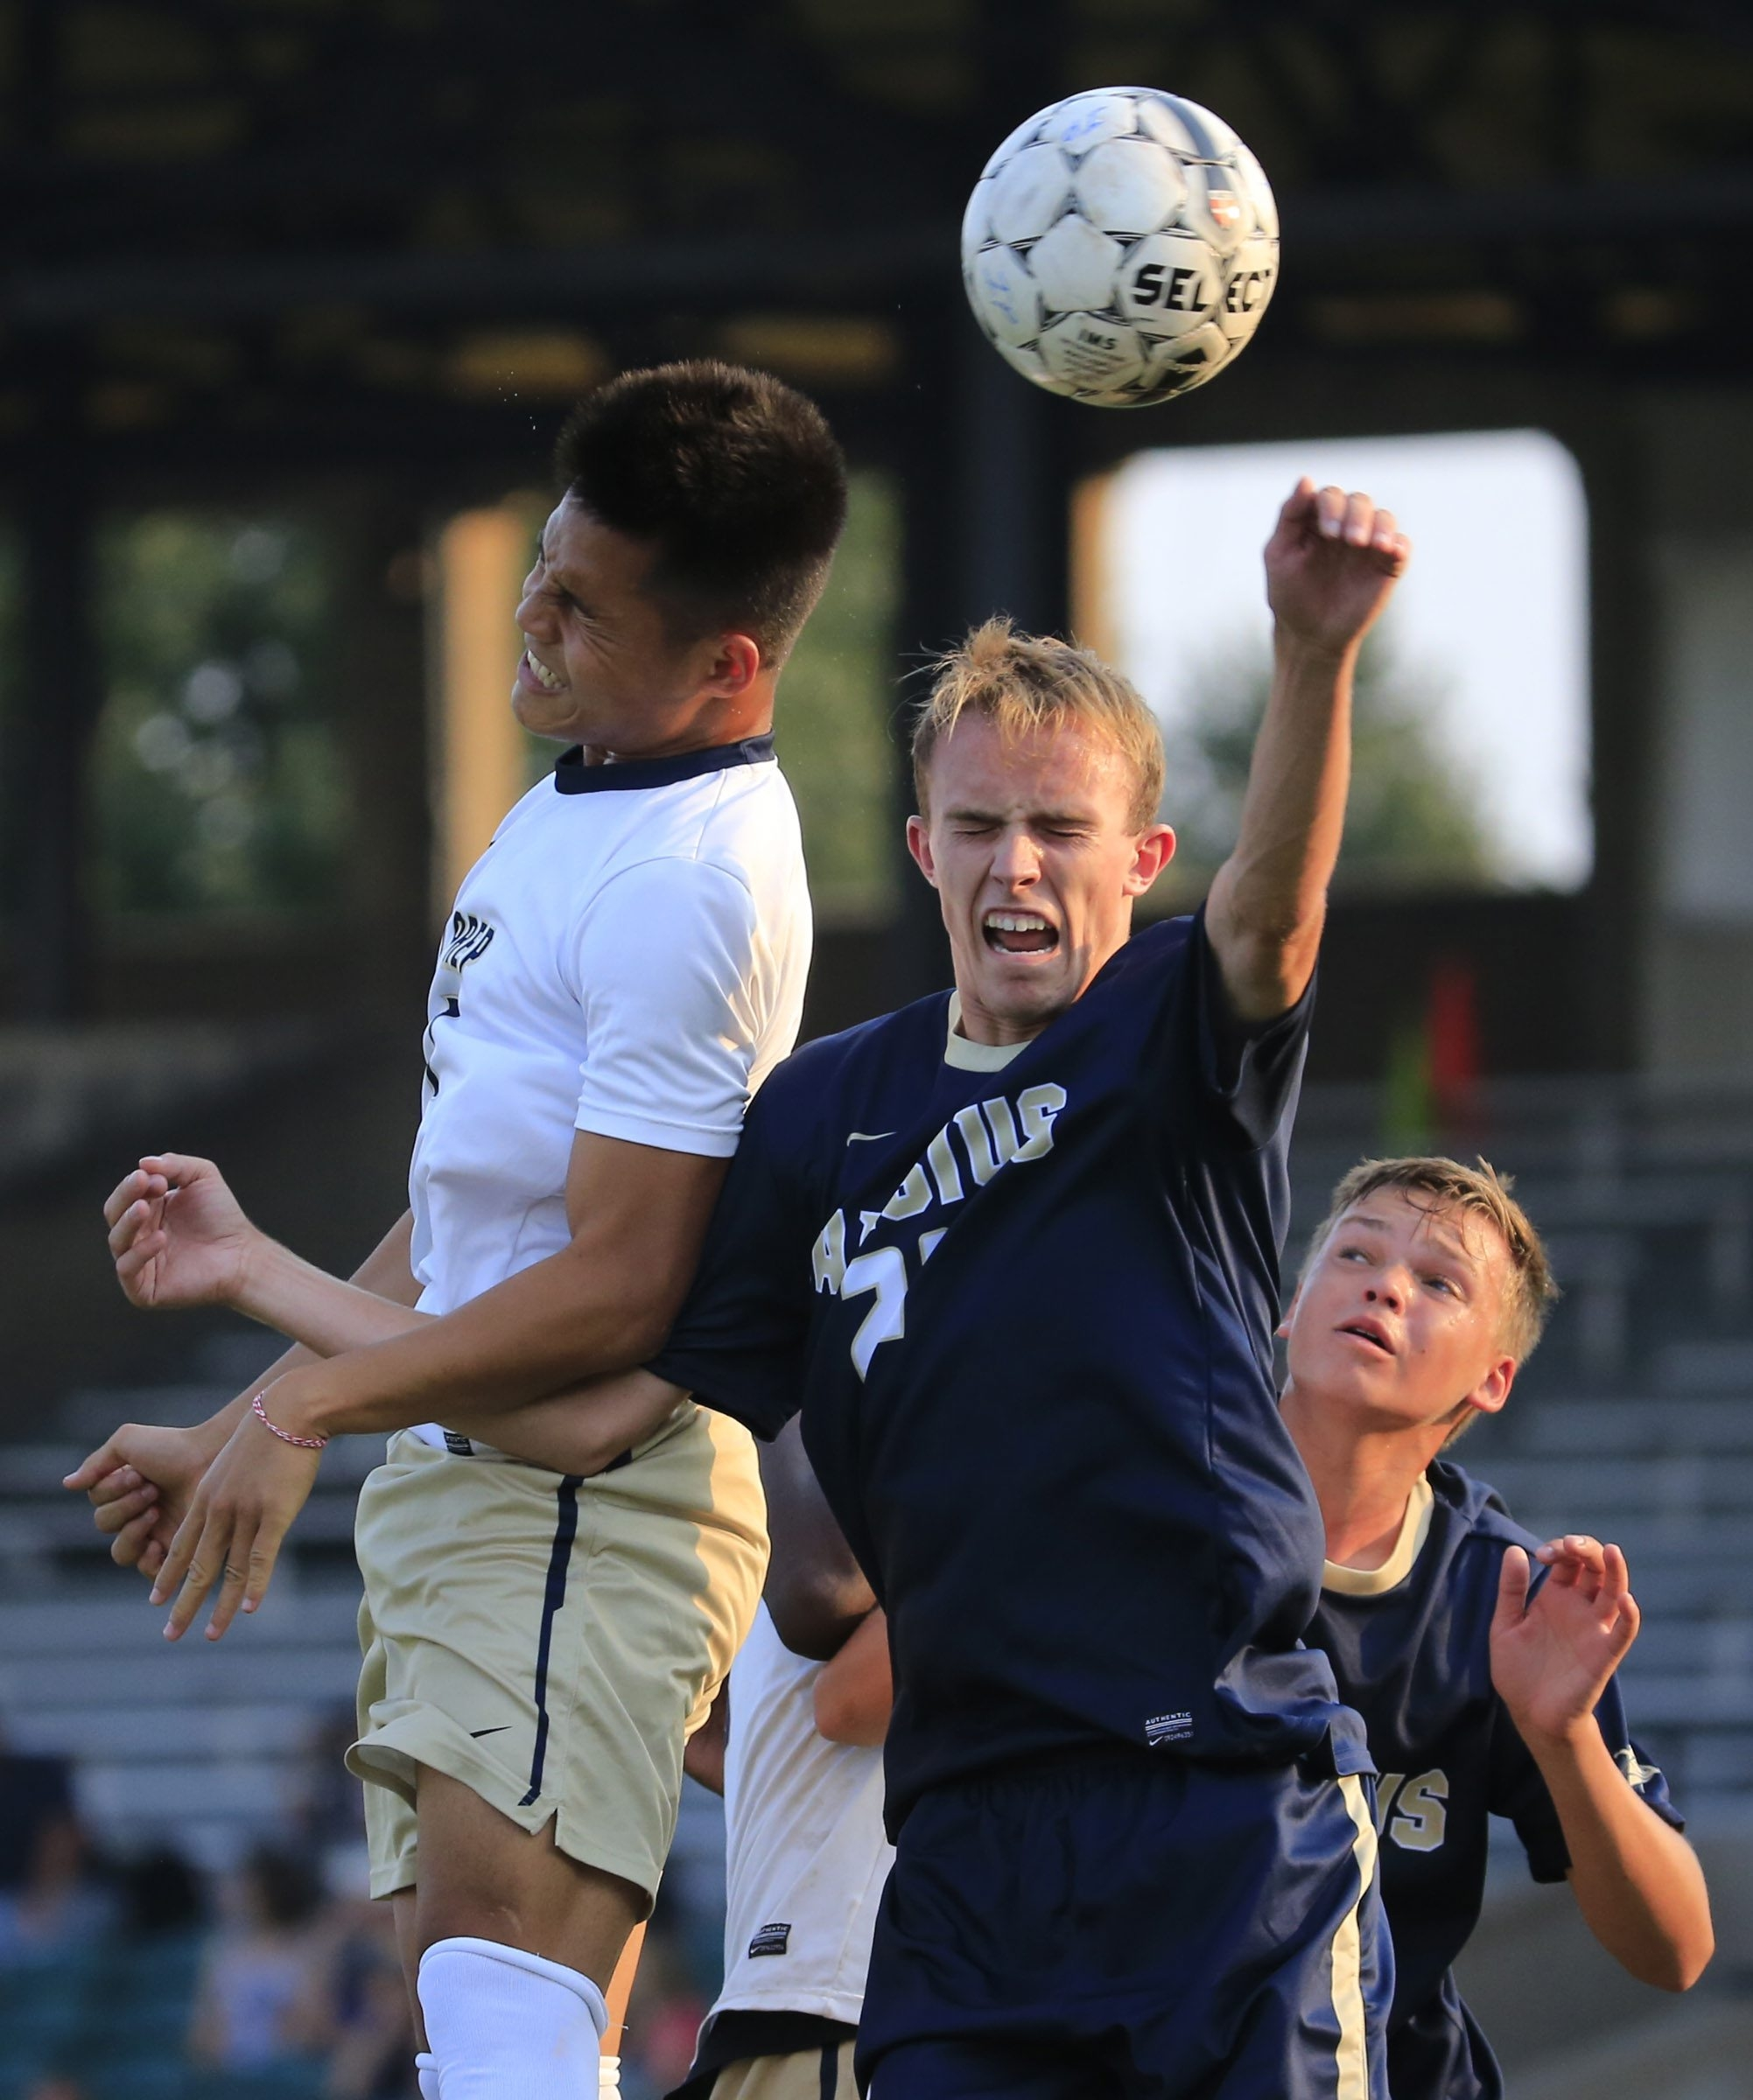 Pa Lu of I-Prep, left, and Joseph Foster of Canisius battle in their nonleague soccer game at All-High Stadium.